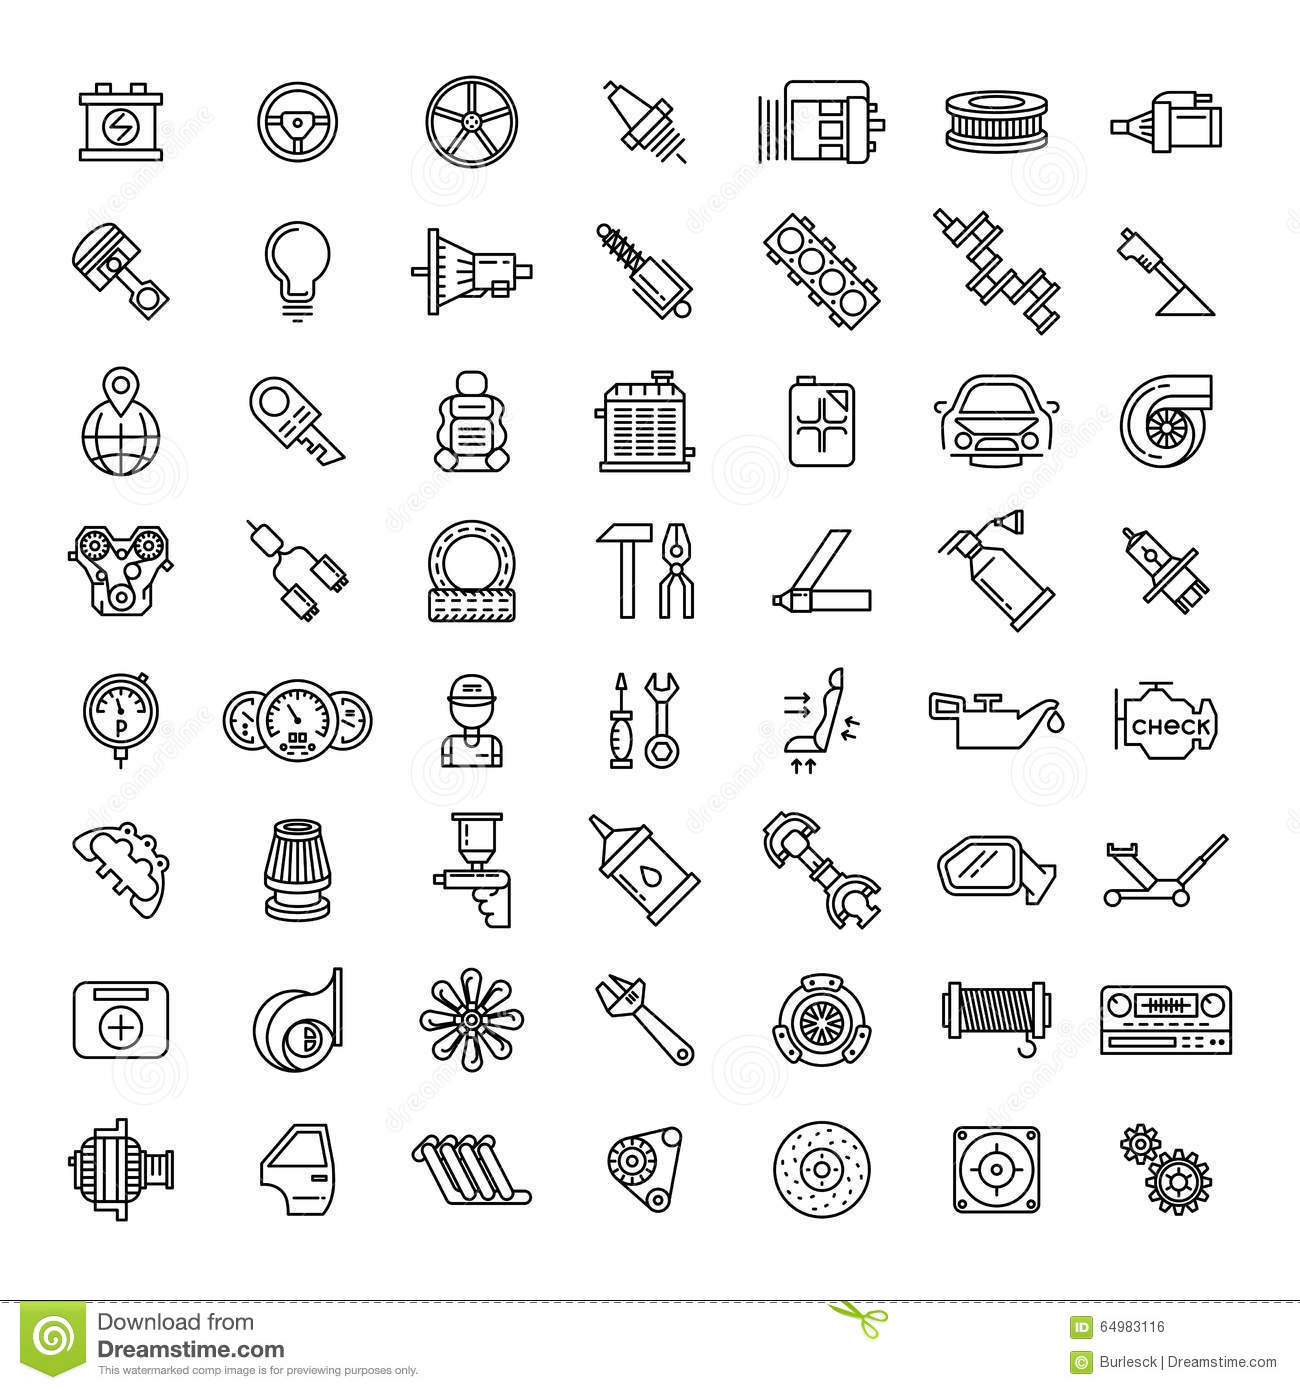 Car parts line icons set stock vector. Illustration of